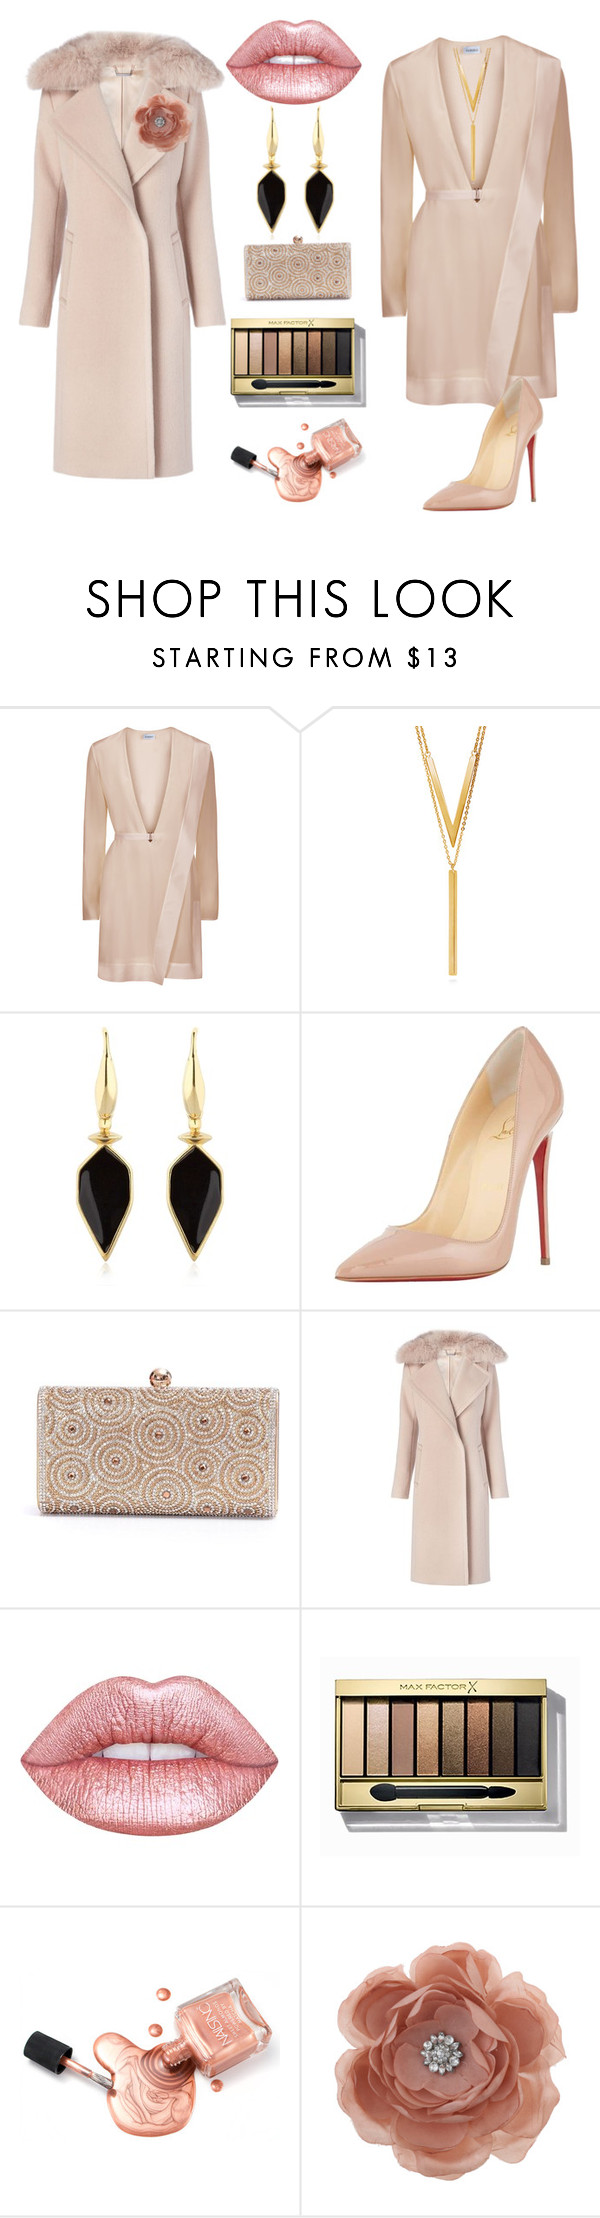 """Untitled #199"" by mddiva ❤ liked on Polyvore featuring BERRICLE, Isabel Marant, Christian Louboutin, Diane Von Furstenberg, Lime Crime, Max Factor and Miss Selfridge"